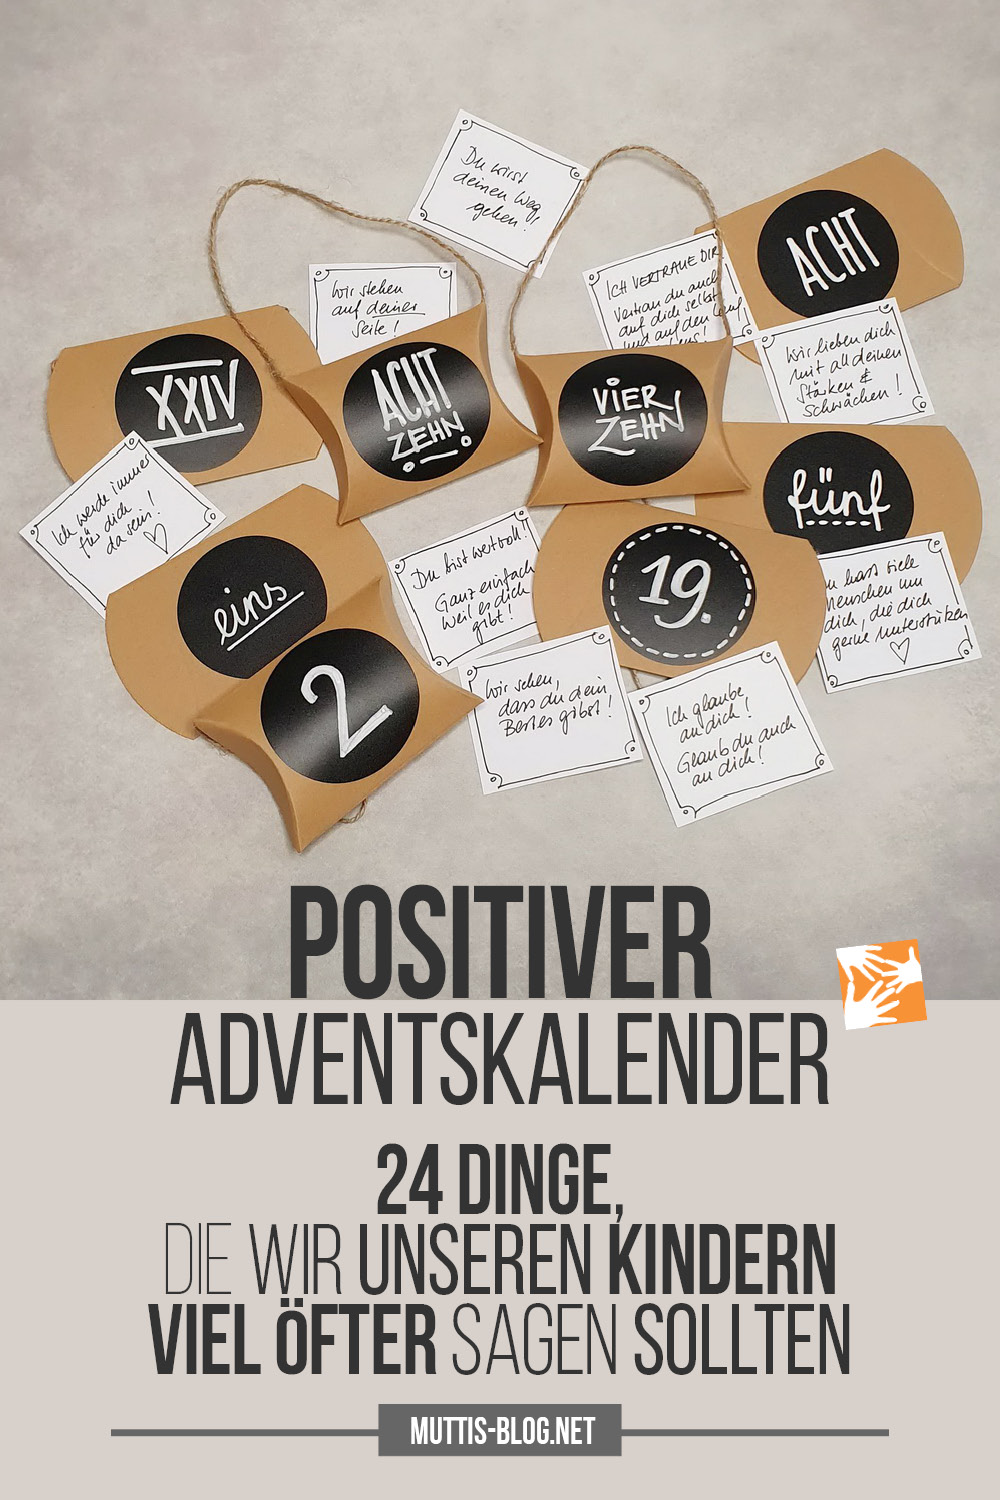 Positiver Adventskalender